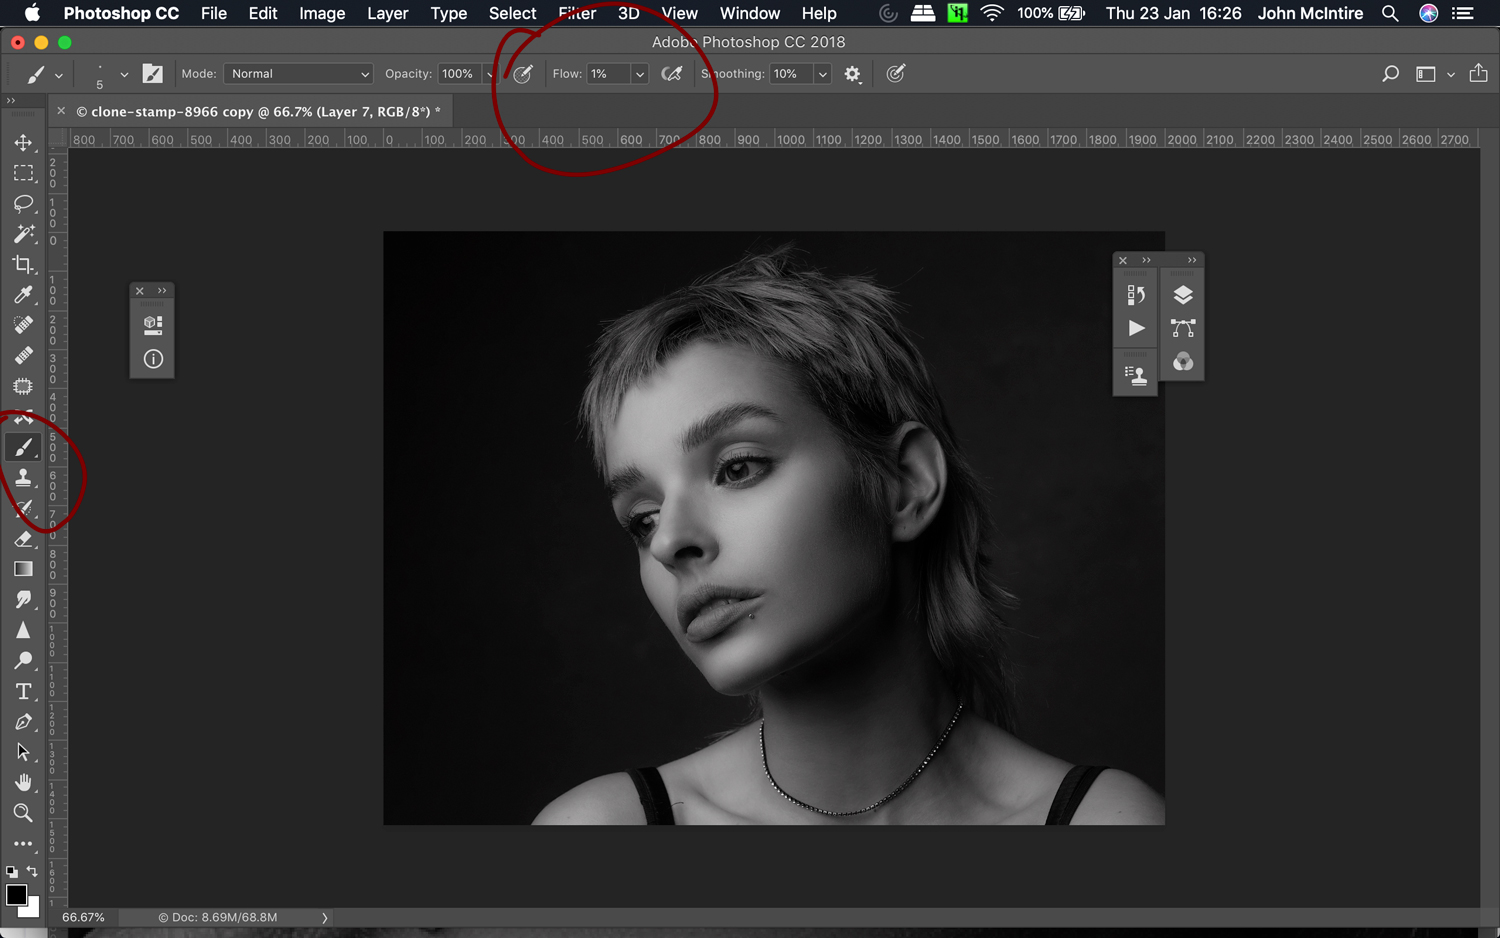 Dodging and burning for skin retouching in Photoshop.